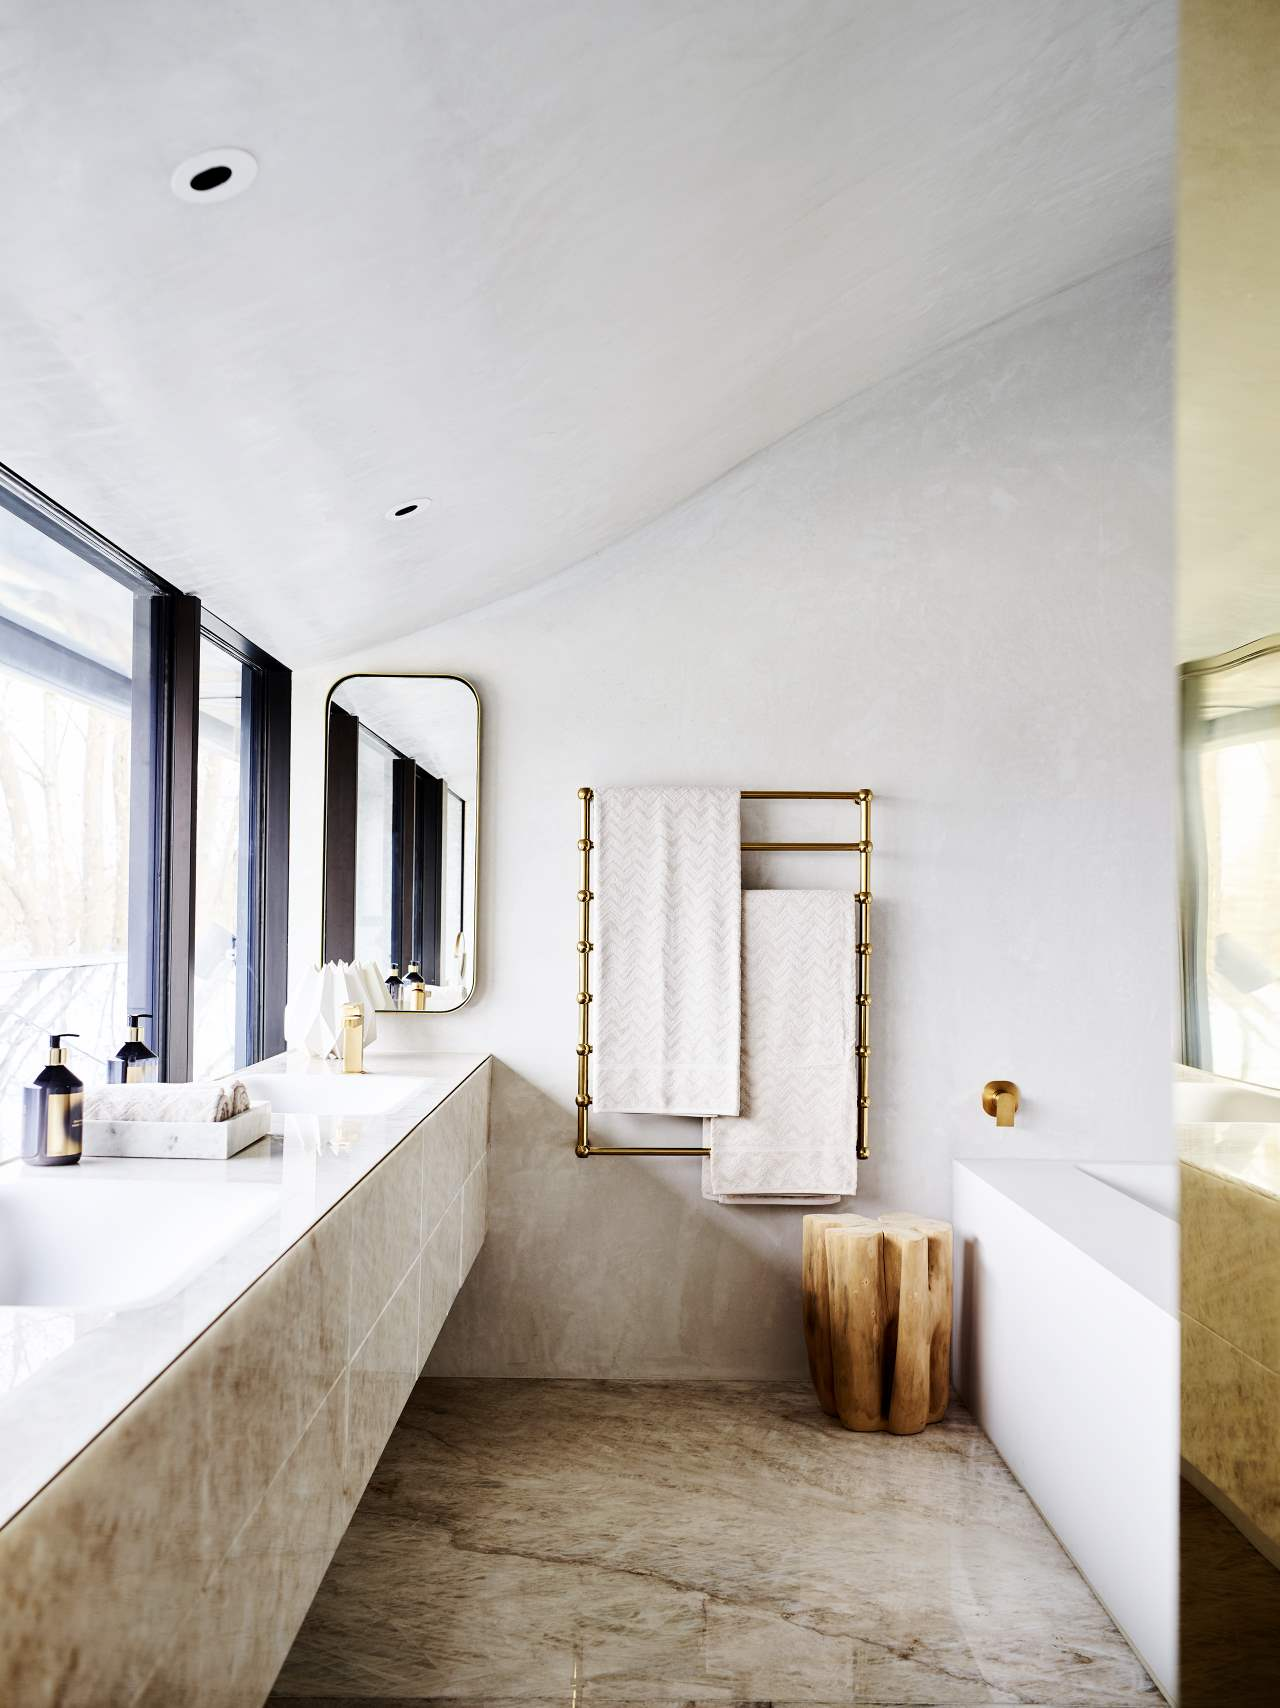 The bathroom is clad with quartz and brass spruces it up to look more glam